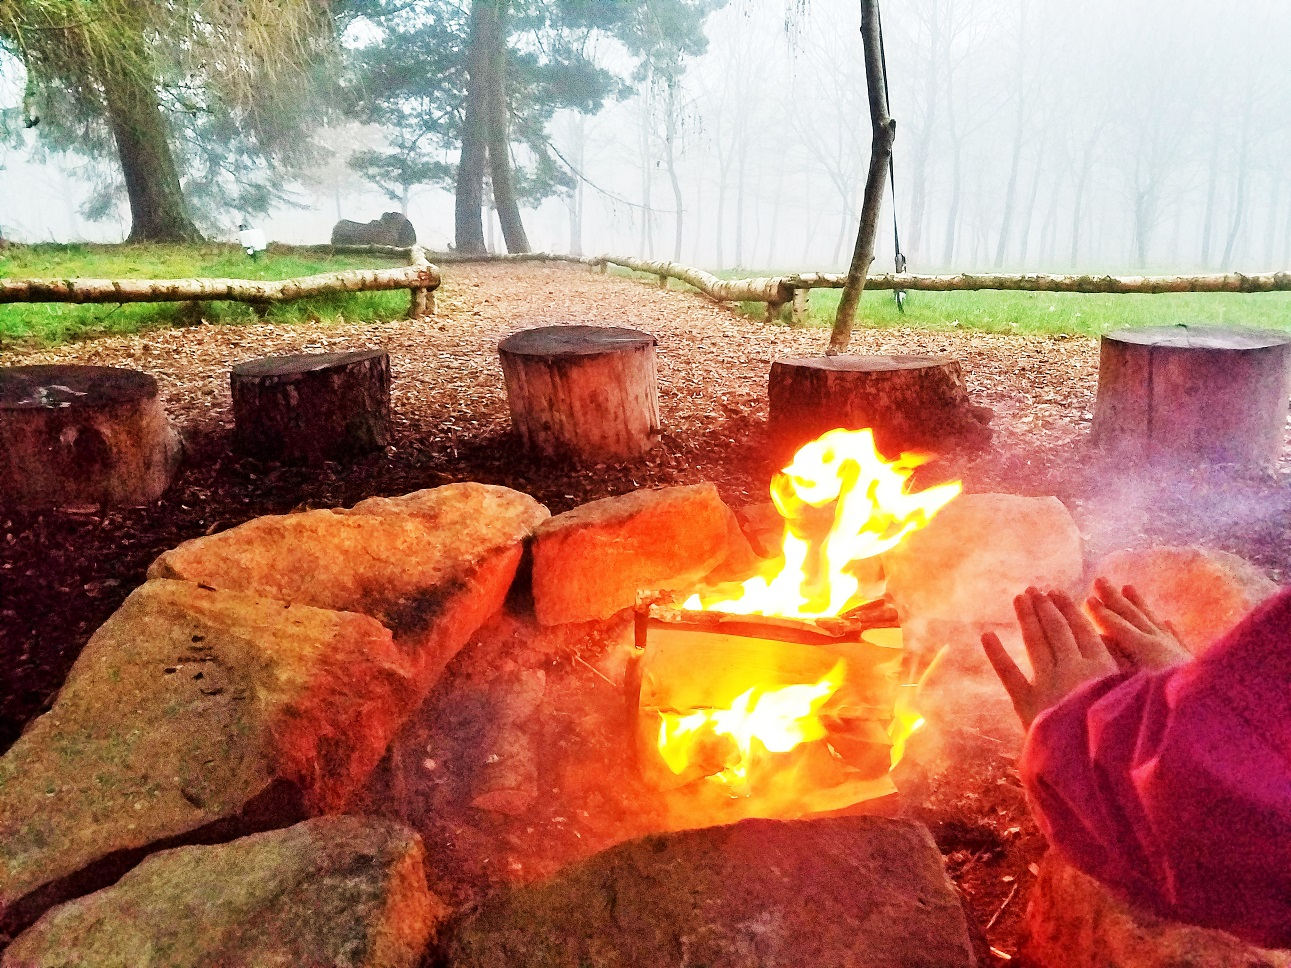 Child warming hands over a bonfire - family glamping site near Beverley called North Star Club